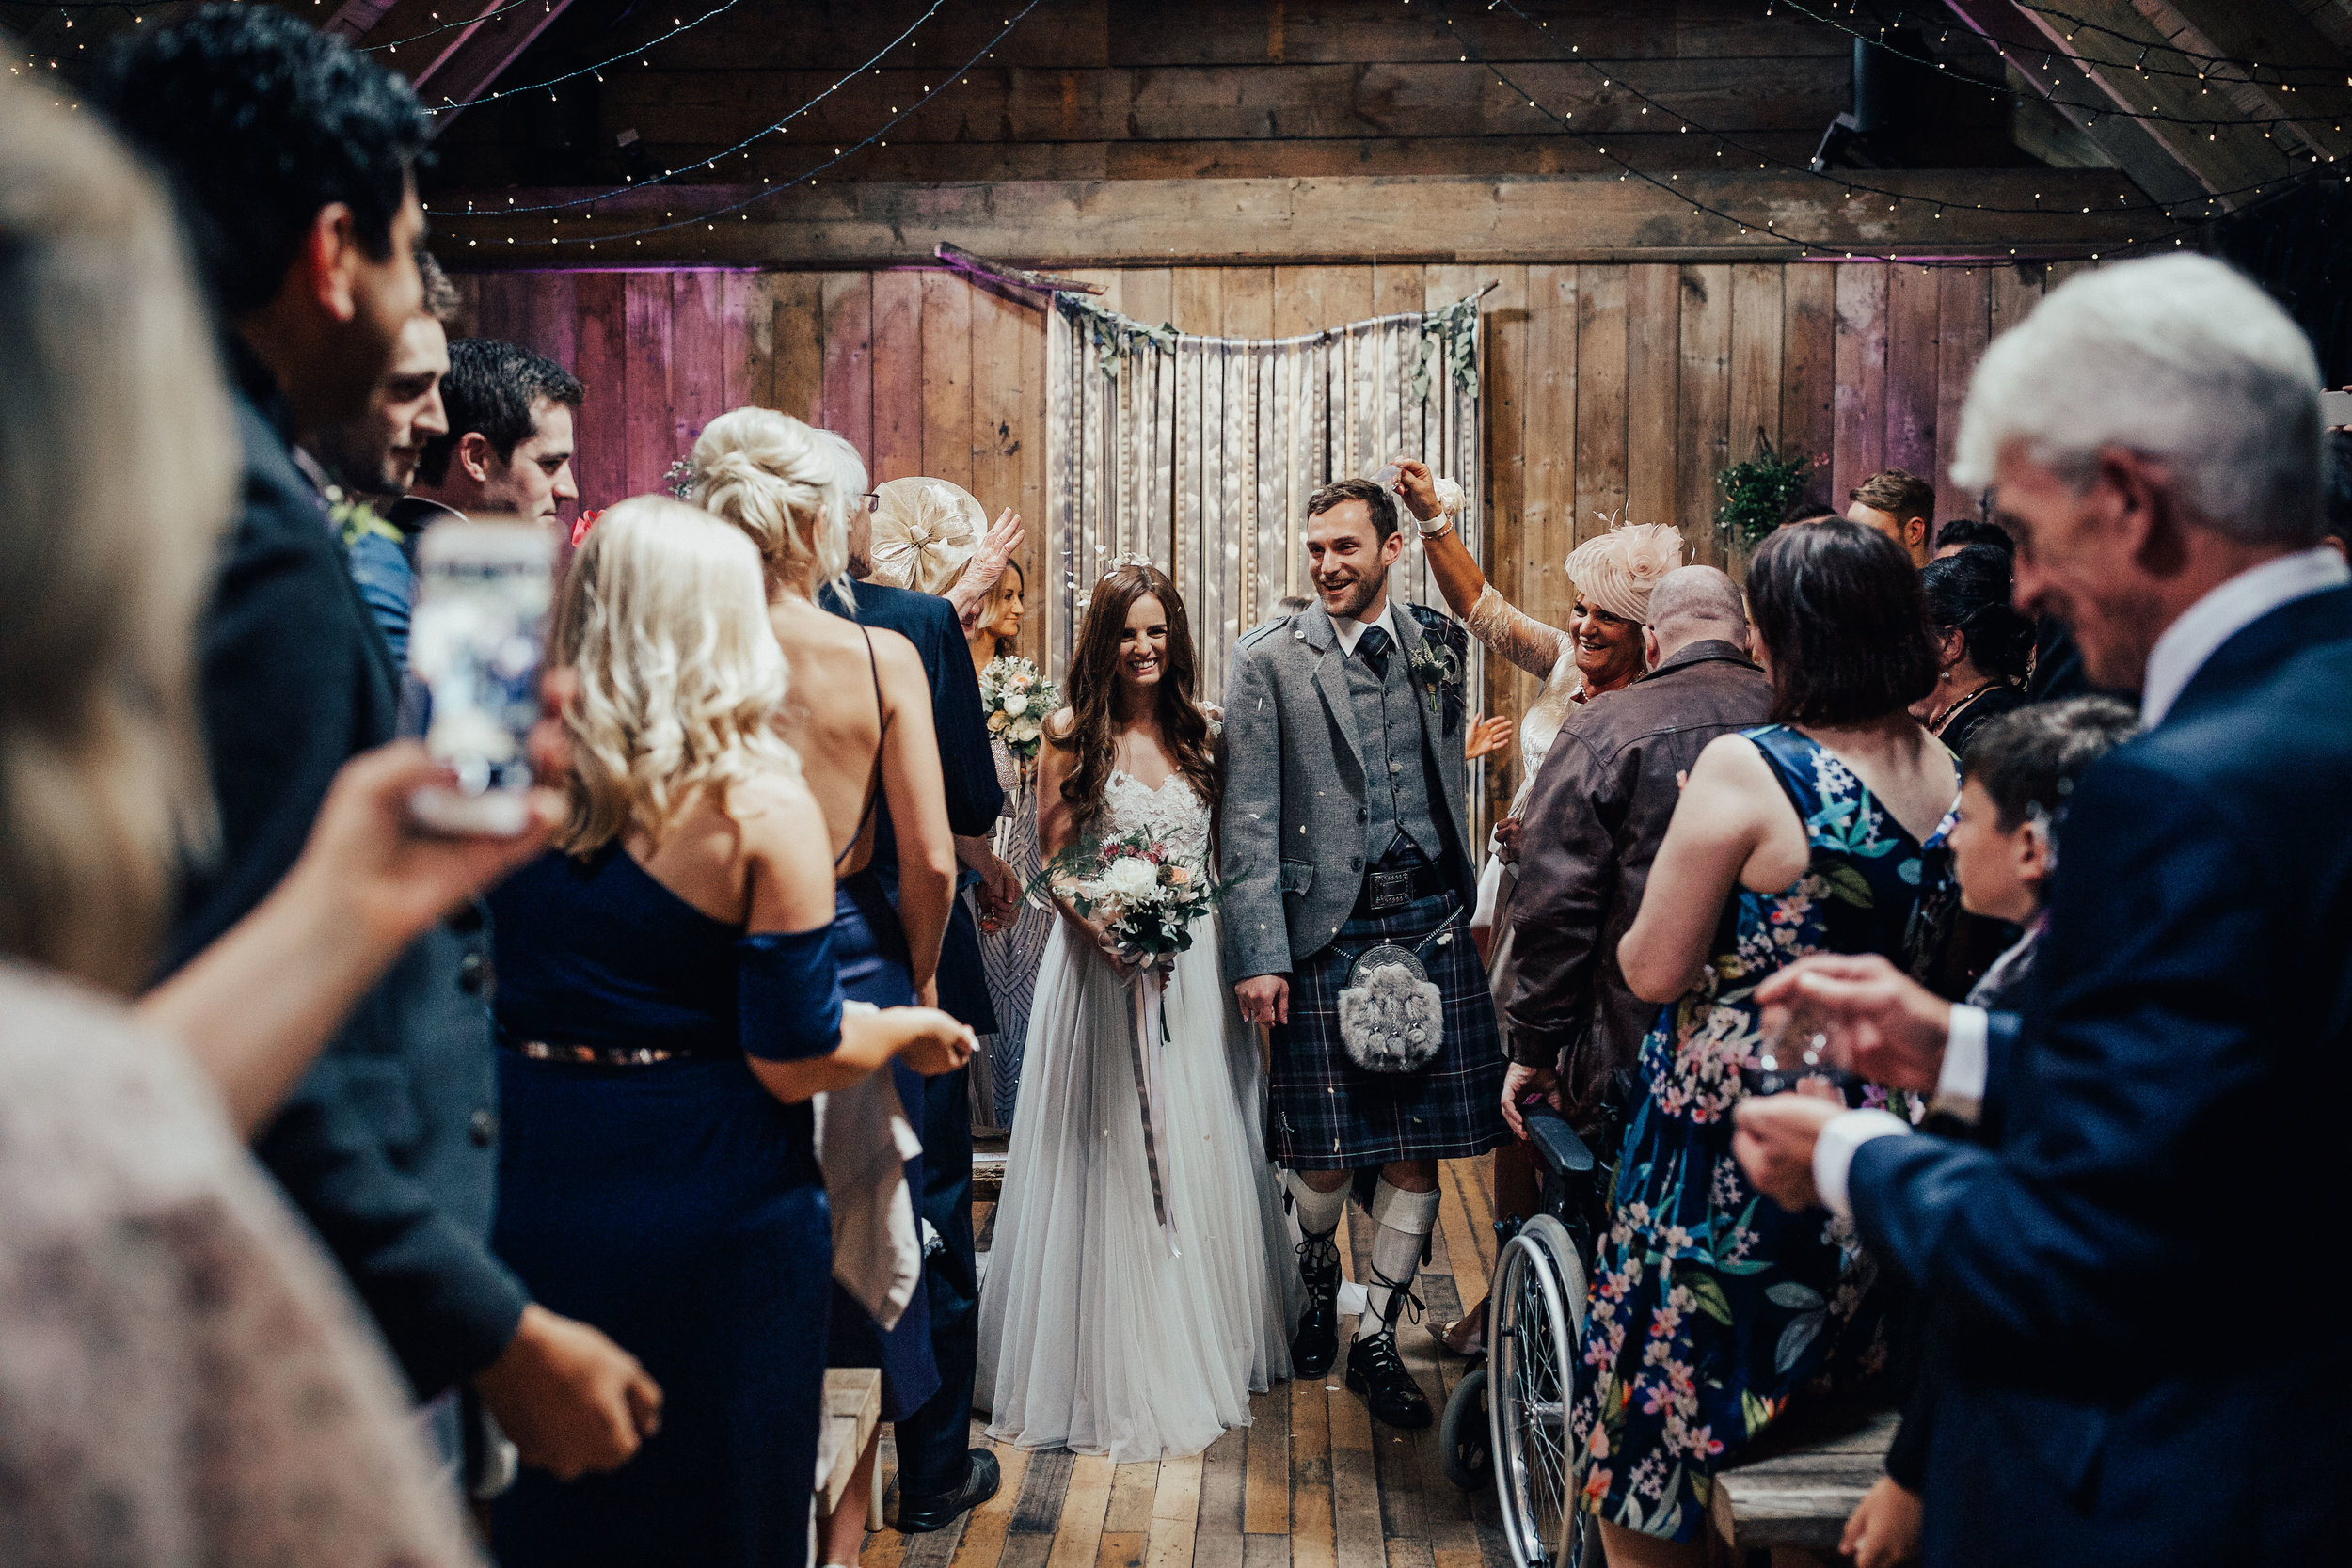 BYRE_AT_INCHYRA_WEDDING_PHOTOGRAPHER_PJ_PHILLIPS_PHOTOGRAPHY_KAYLEIGH_ANDREW_94.jpg